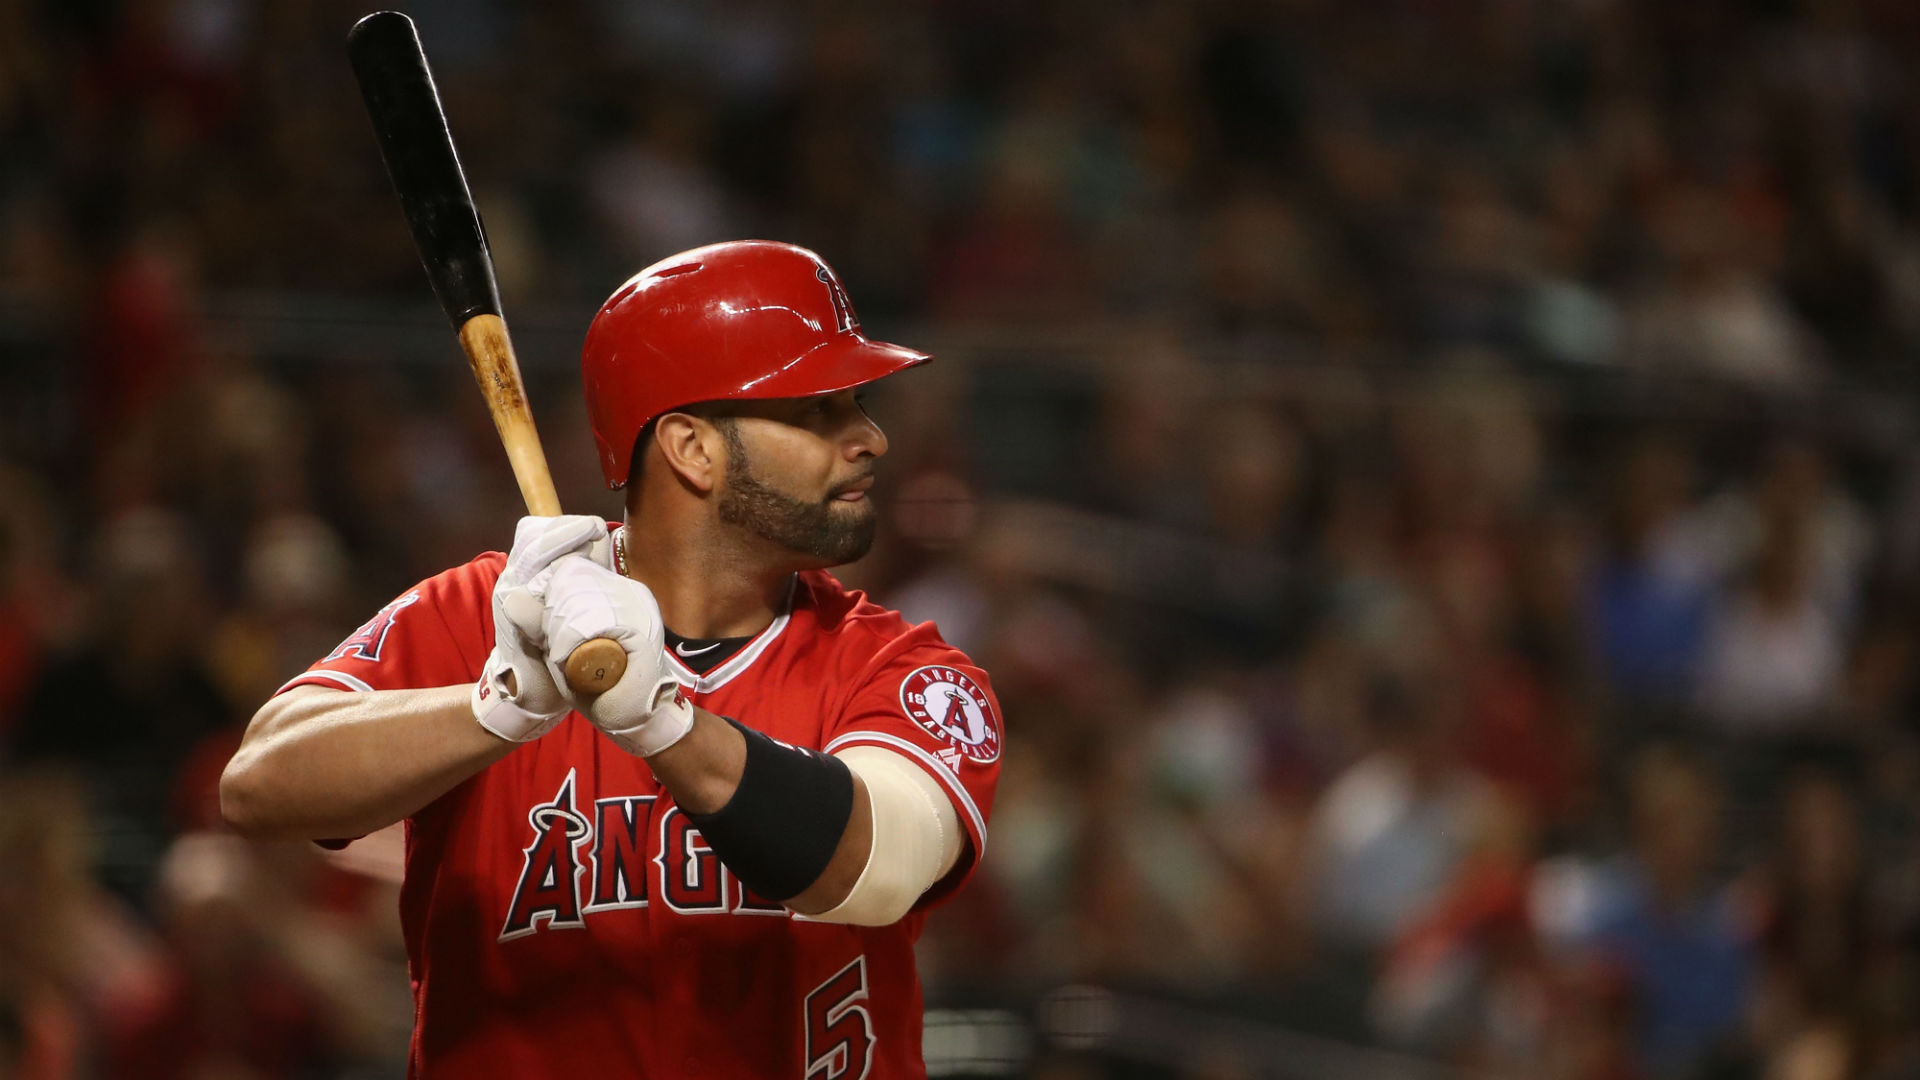 Pujols-021919-getty-ftr